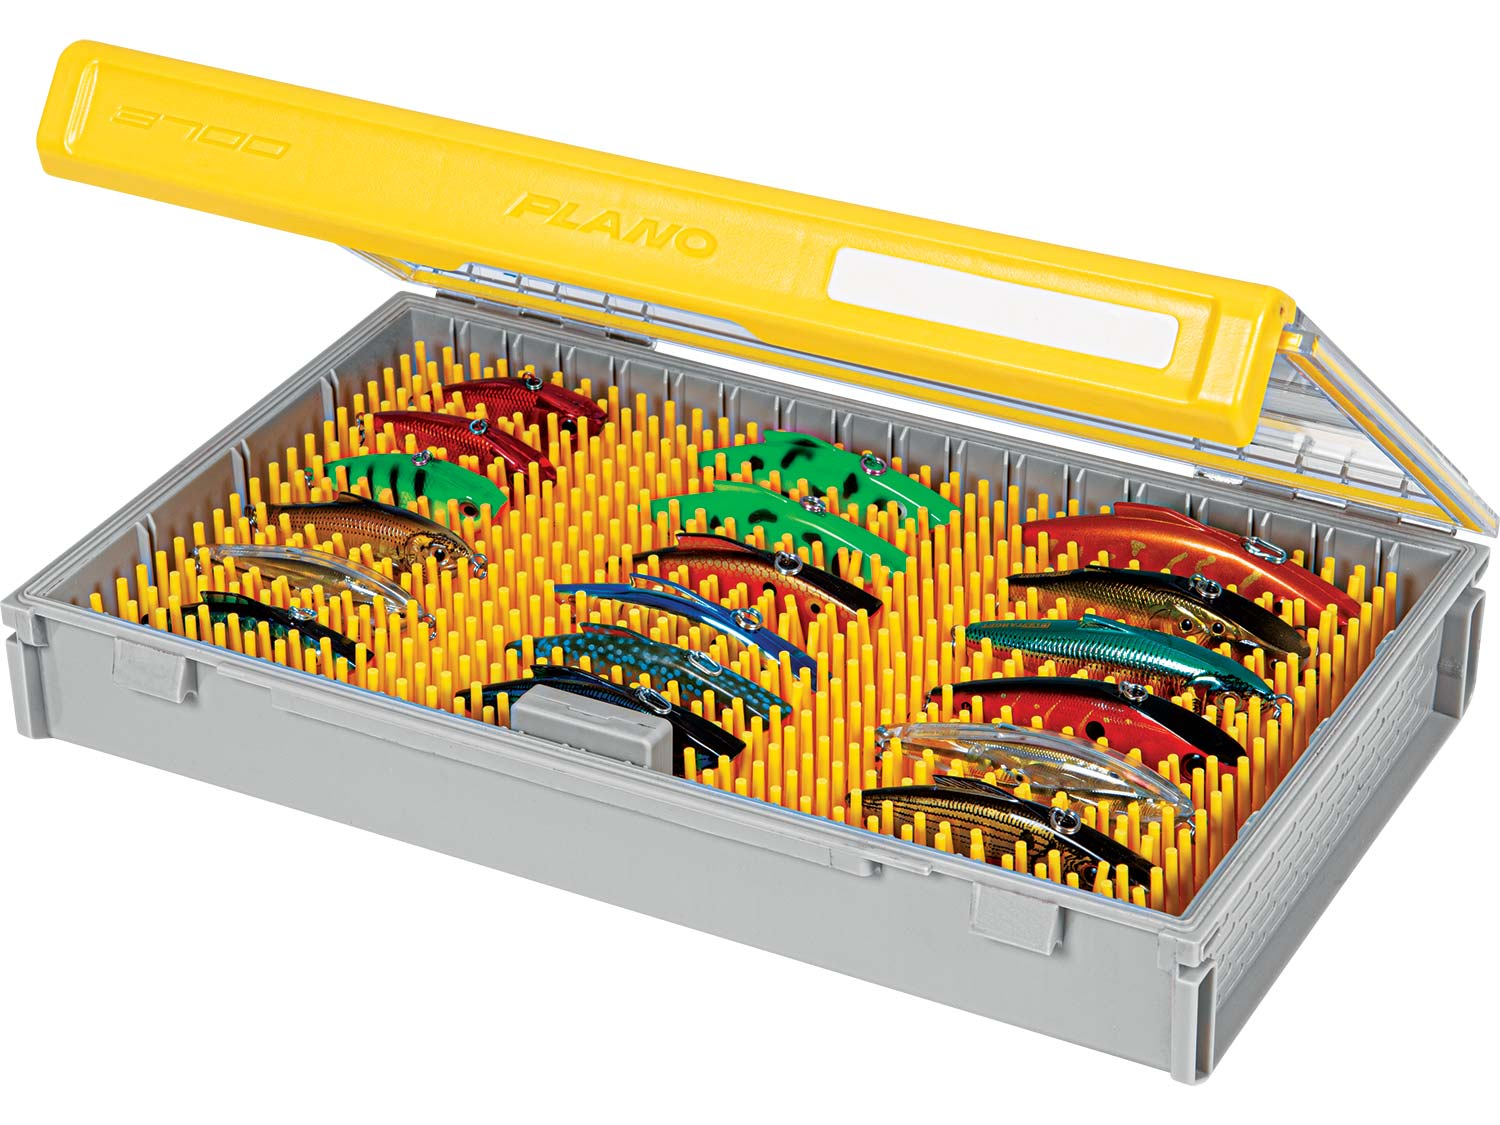 Plano Edge Tackle Boxes filled with fishing lures on a white background.